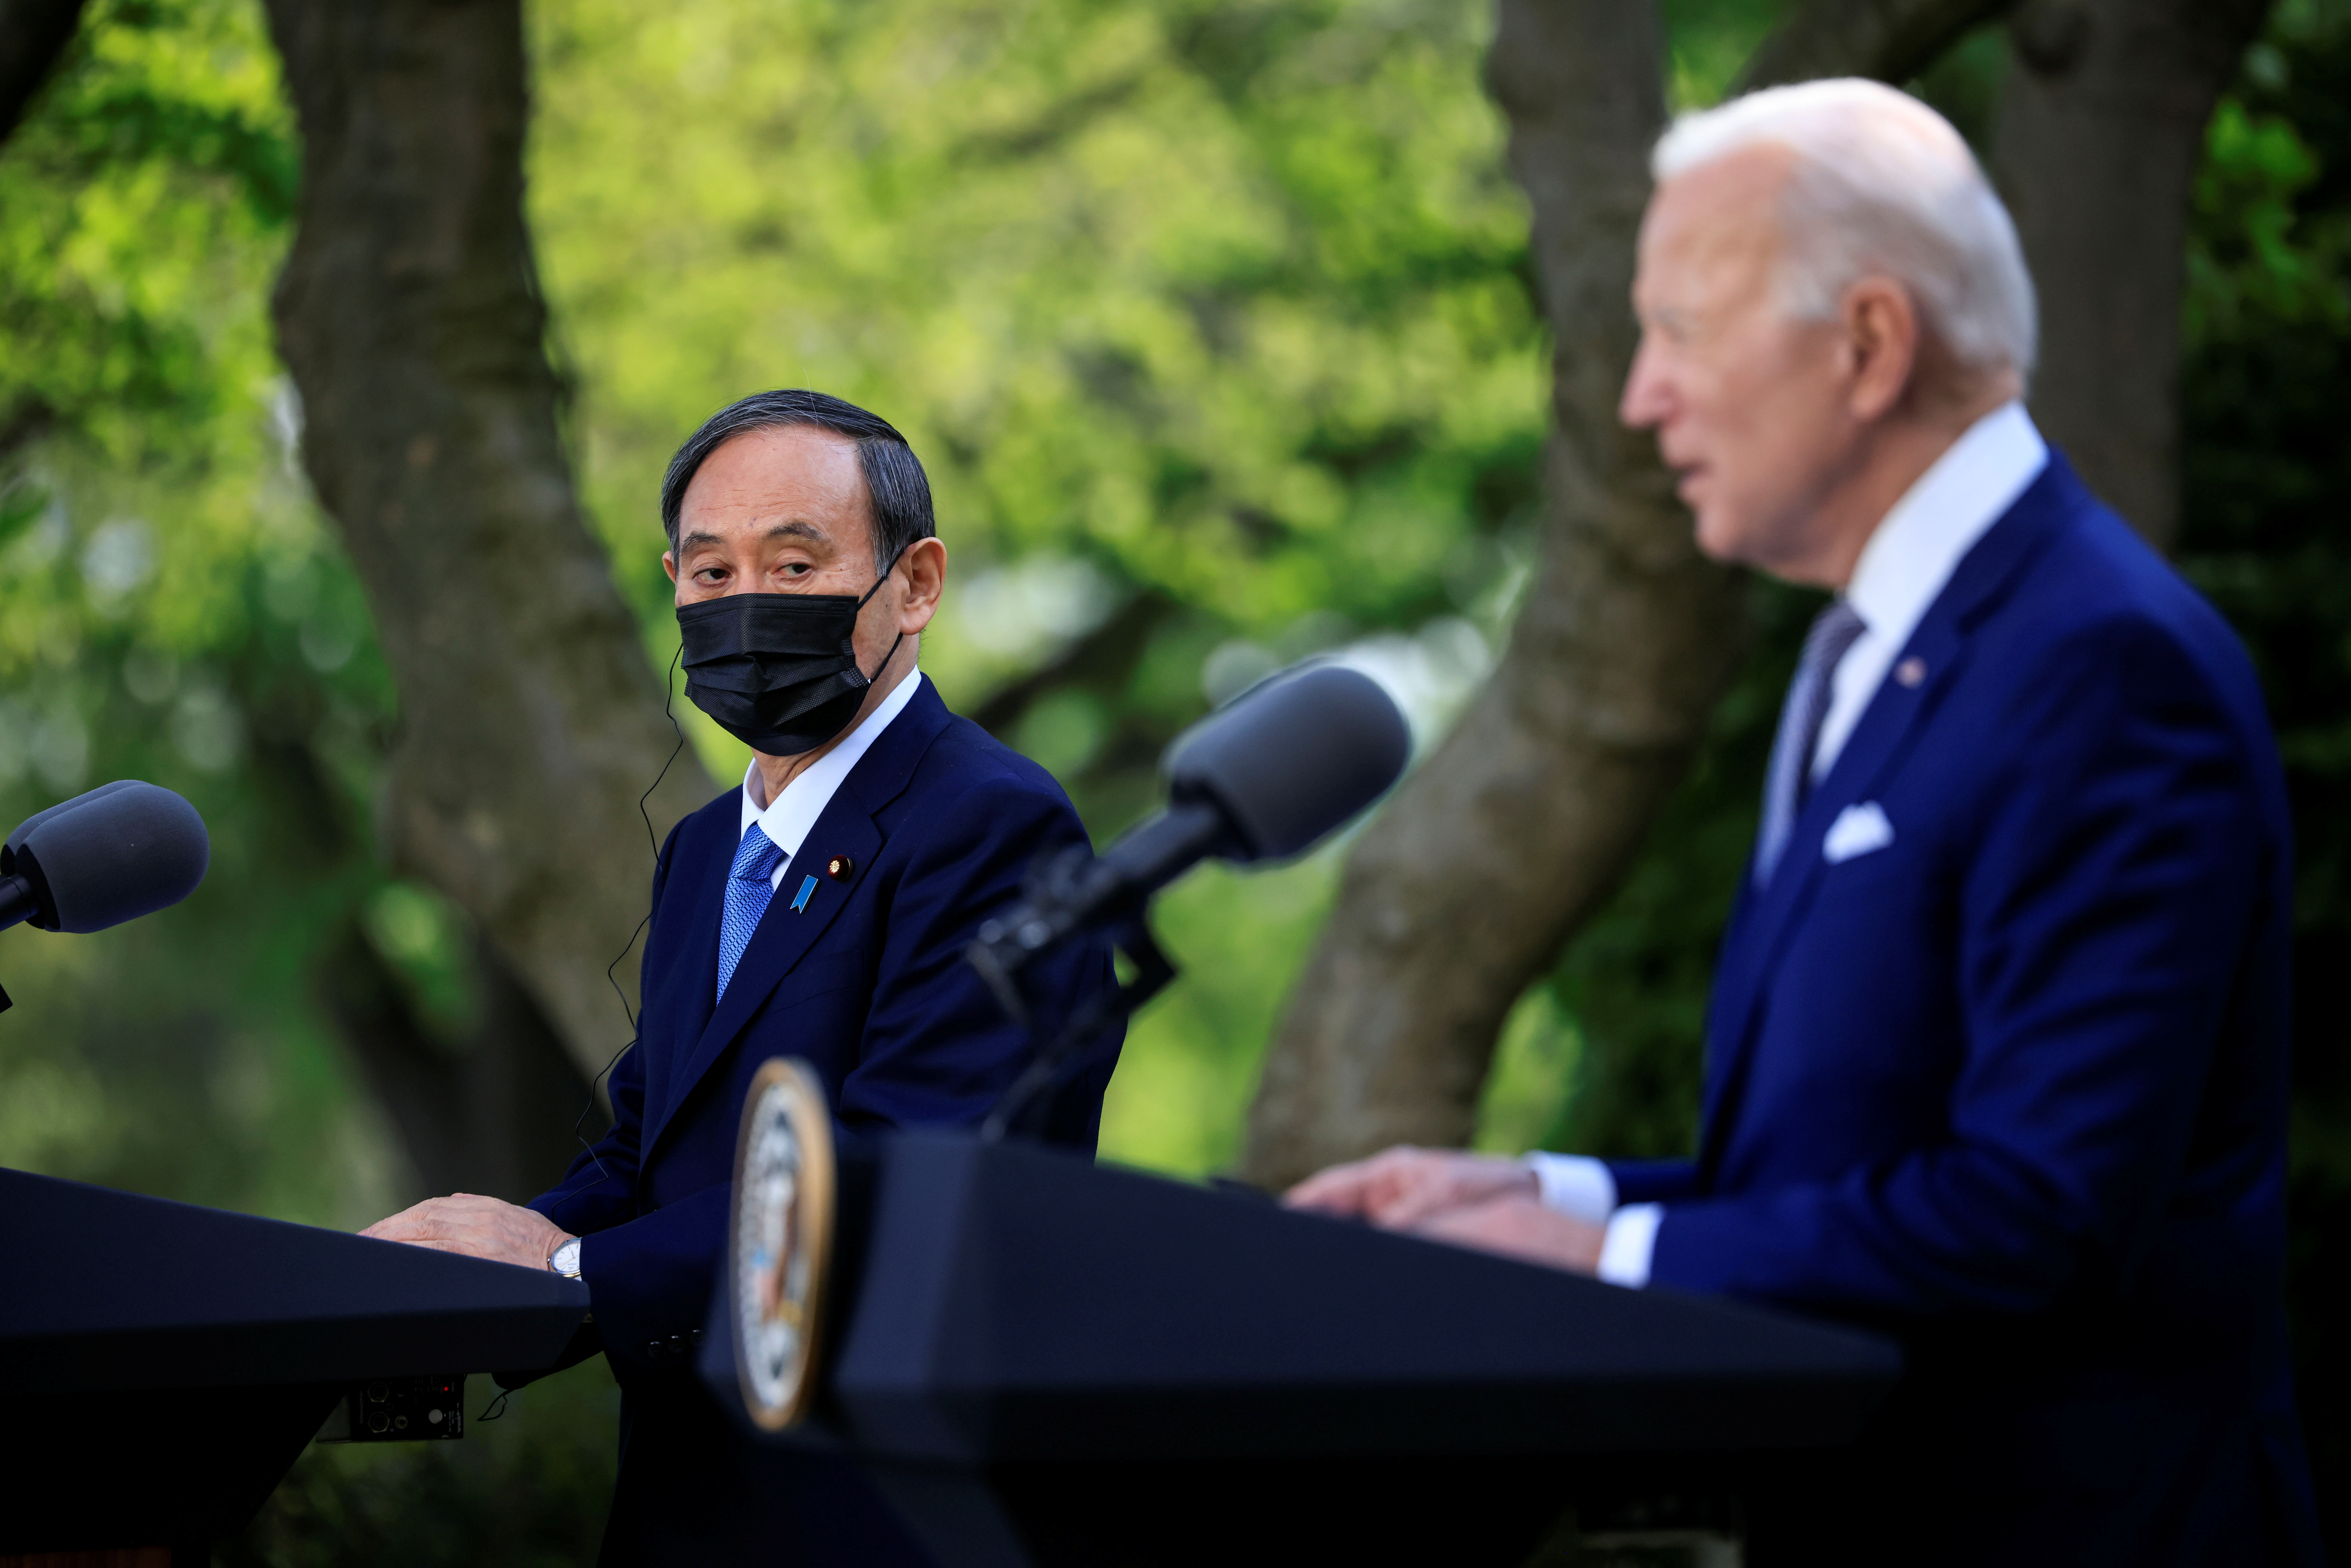 Japan's Prime Minister Yoshihide Suga and U.S. President Joe Biden hold a joint news conference in the Rose Garden at the White House in Washington, U.S., April 16, 2021. REUTERS/Tom Brenner